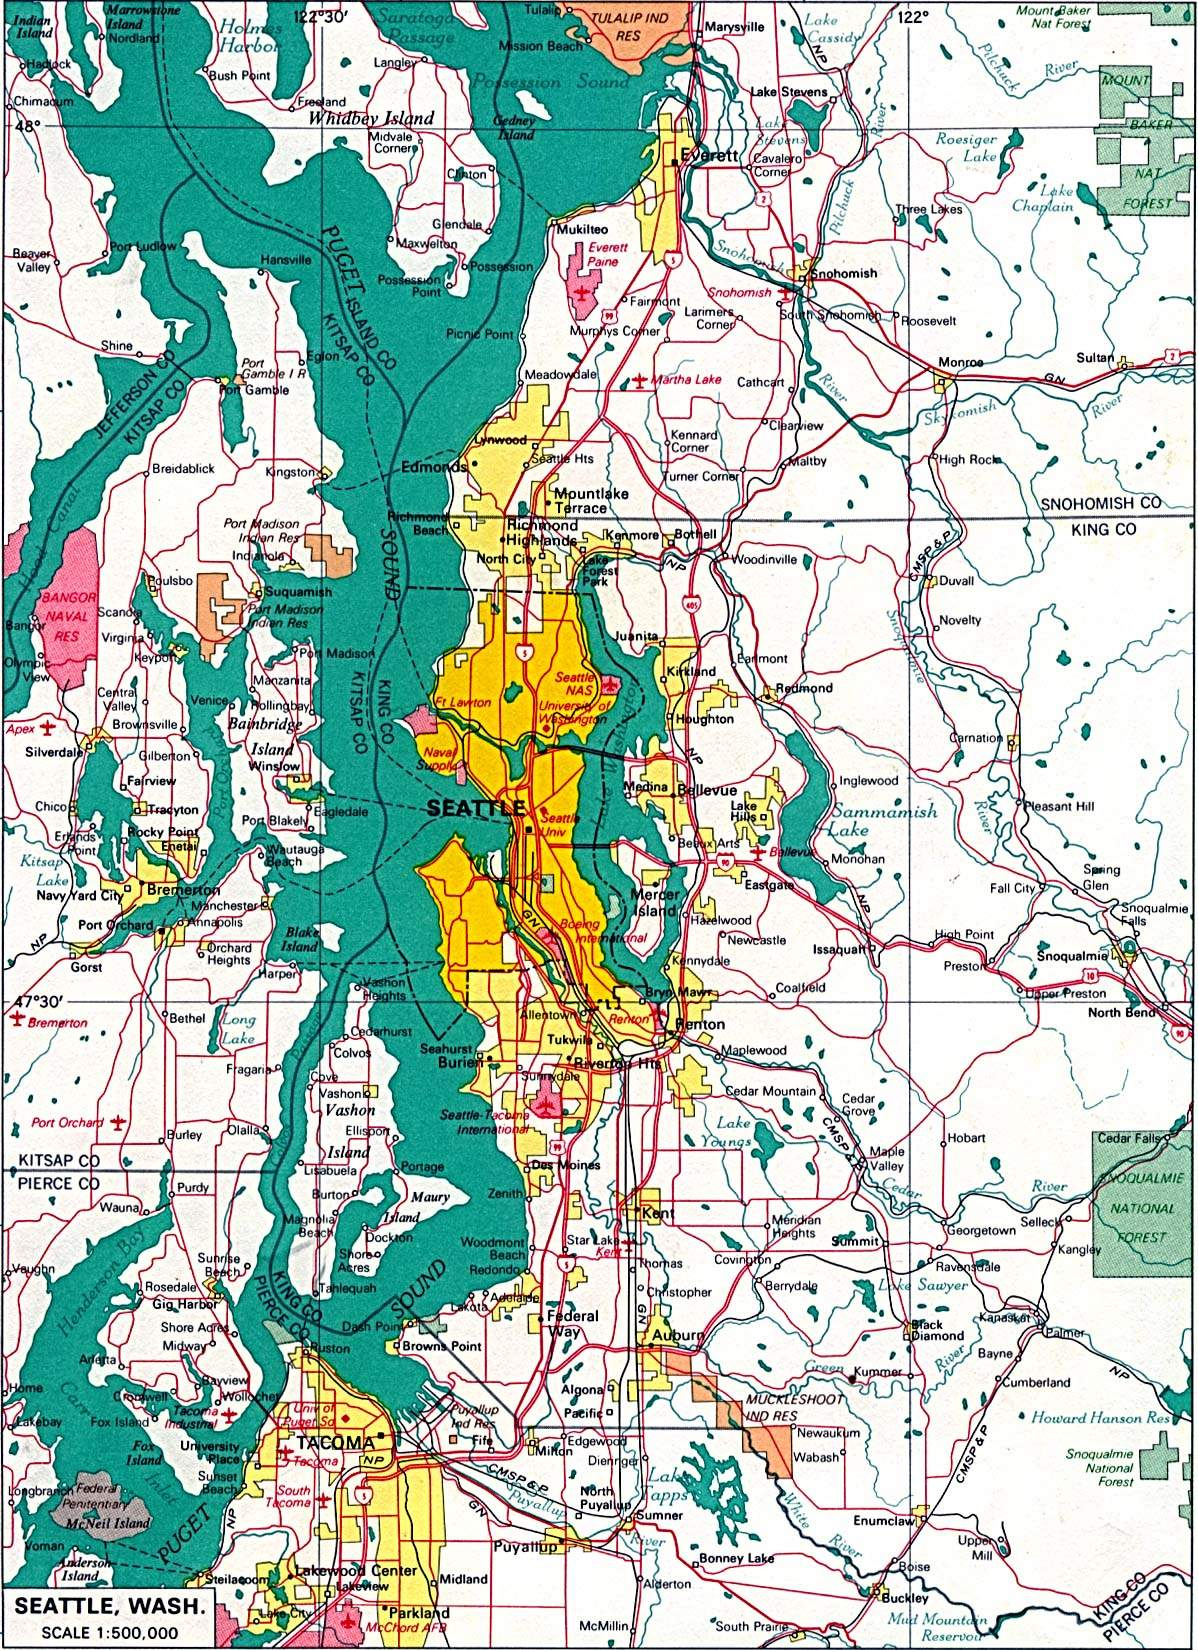 Large Seattle Maps For Free Download And Print | High-Resolution And - Printable Map Of Downtown Seattle